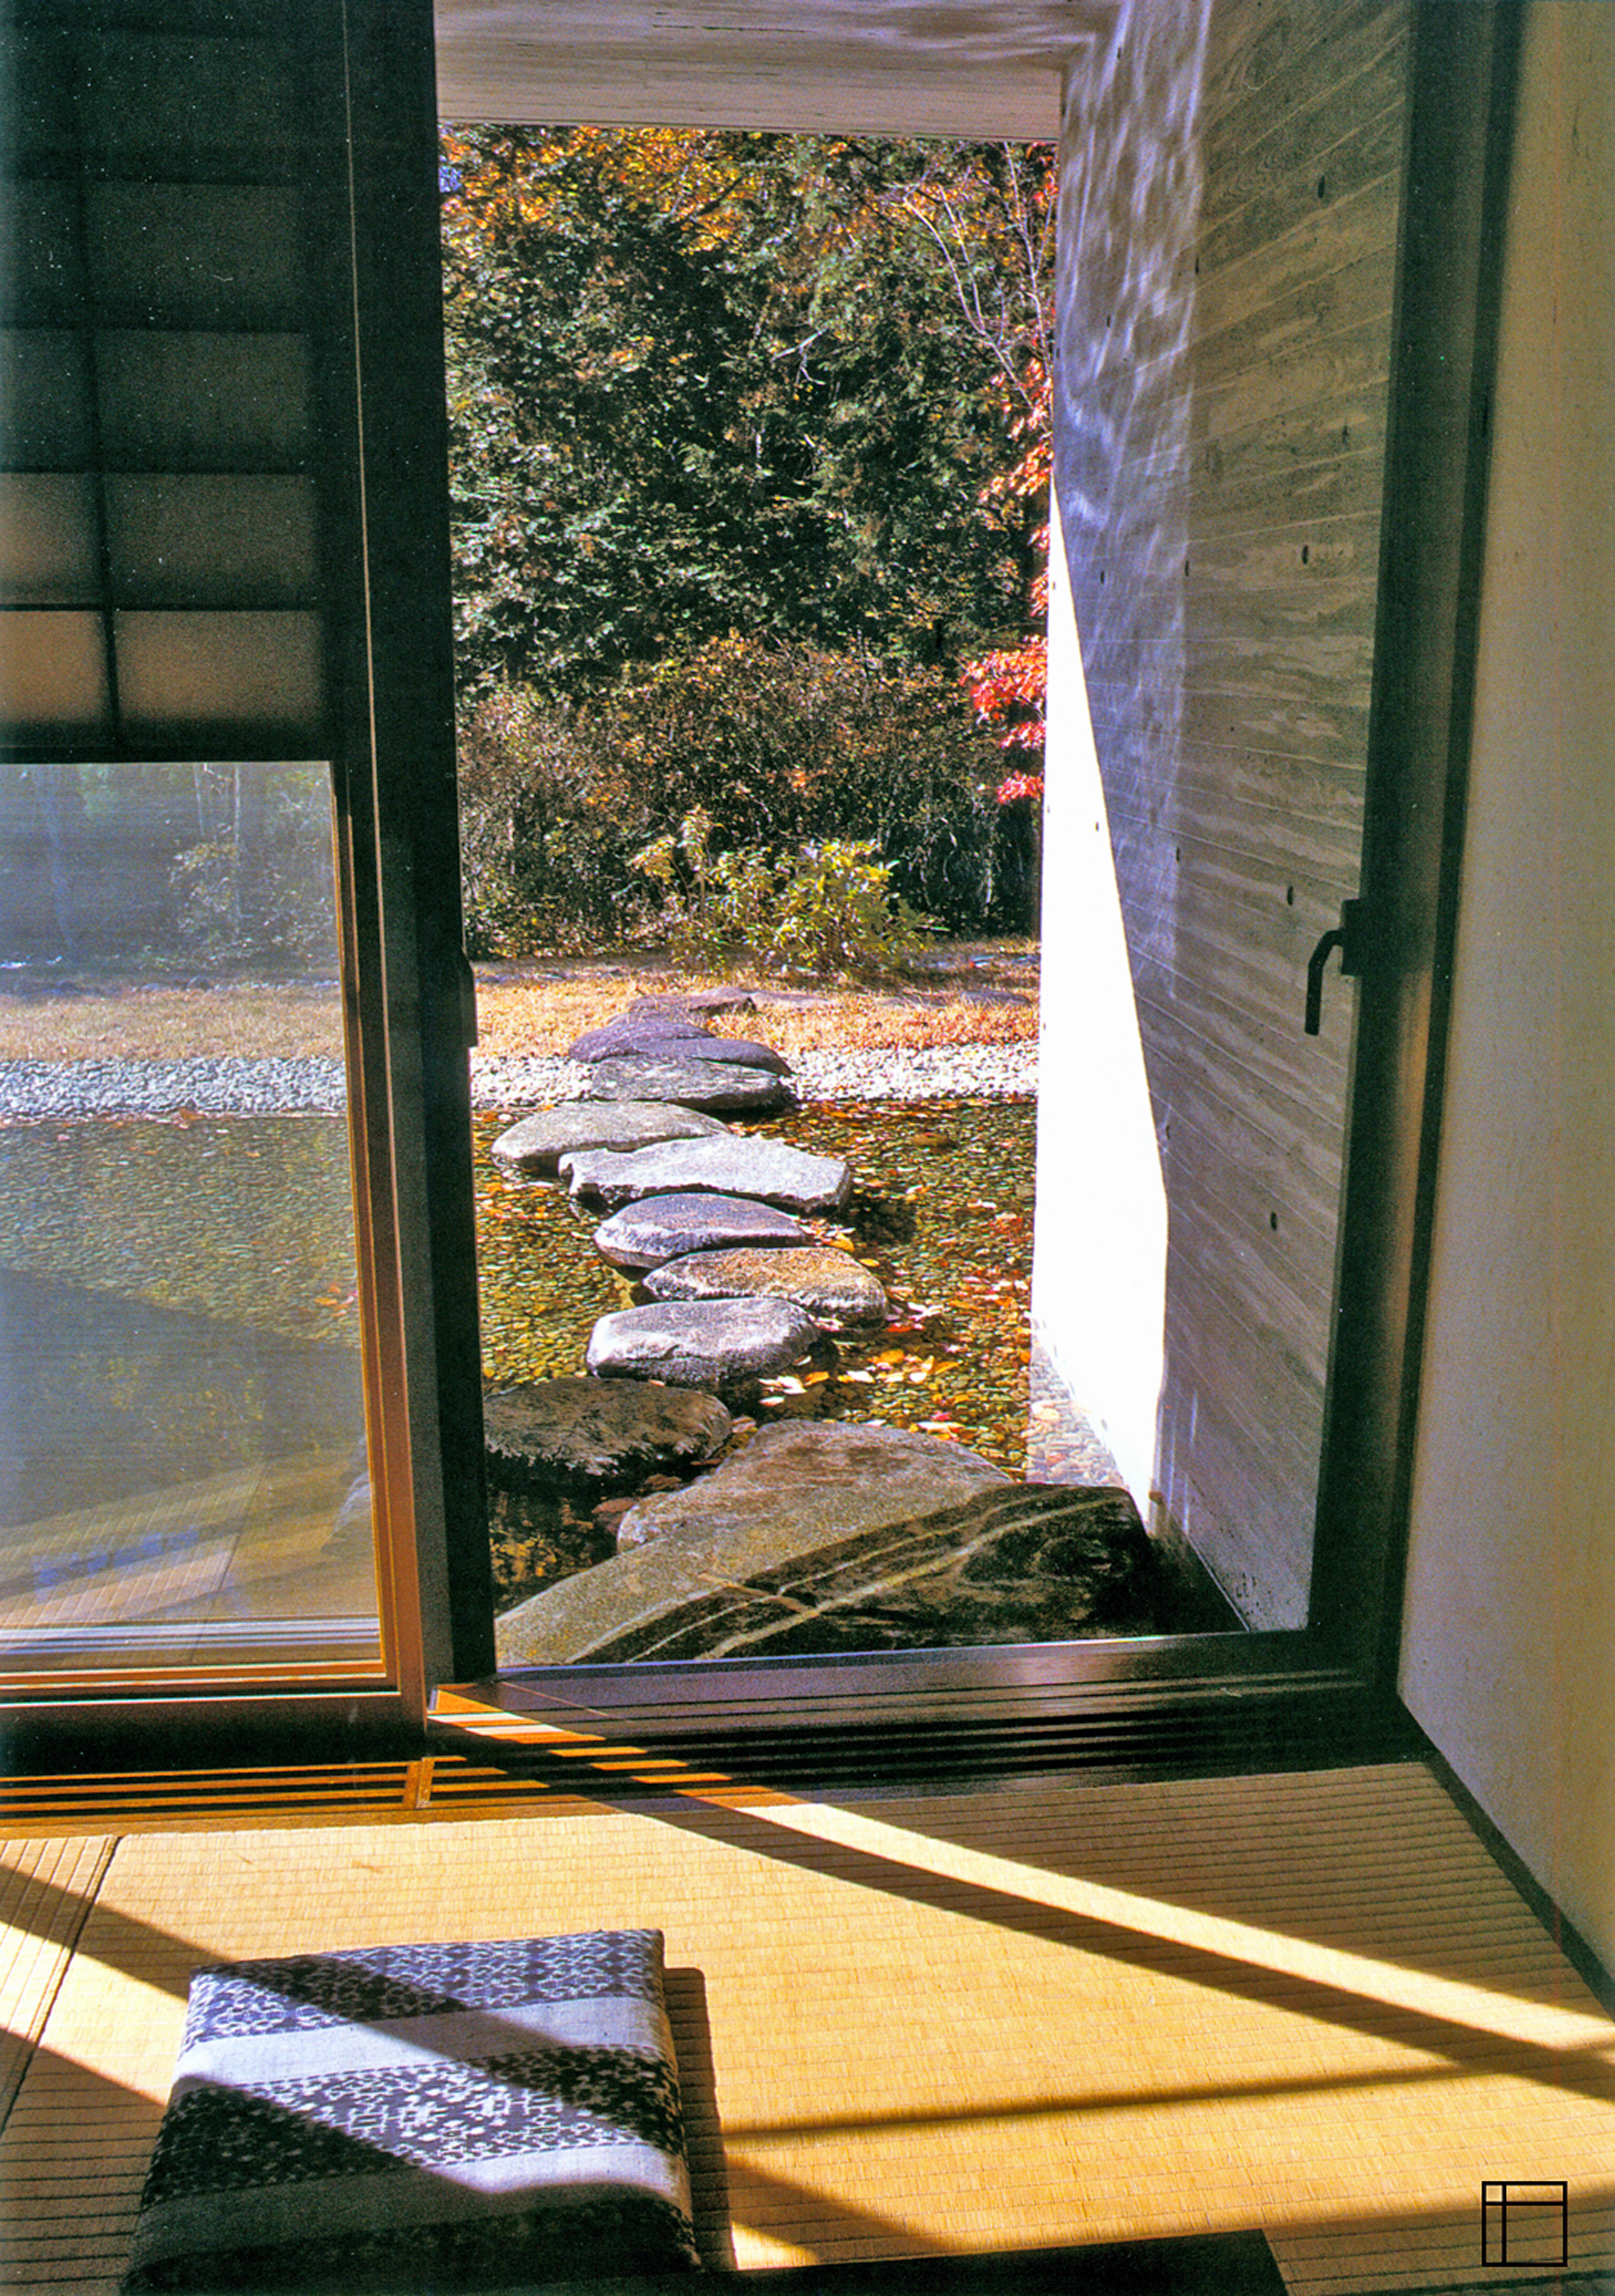 Japanese Interior & Watergarden Solution: CALM WATERS by Forbeli Home London UK, Bordeaux France